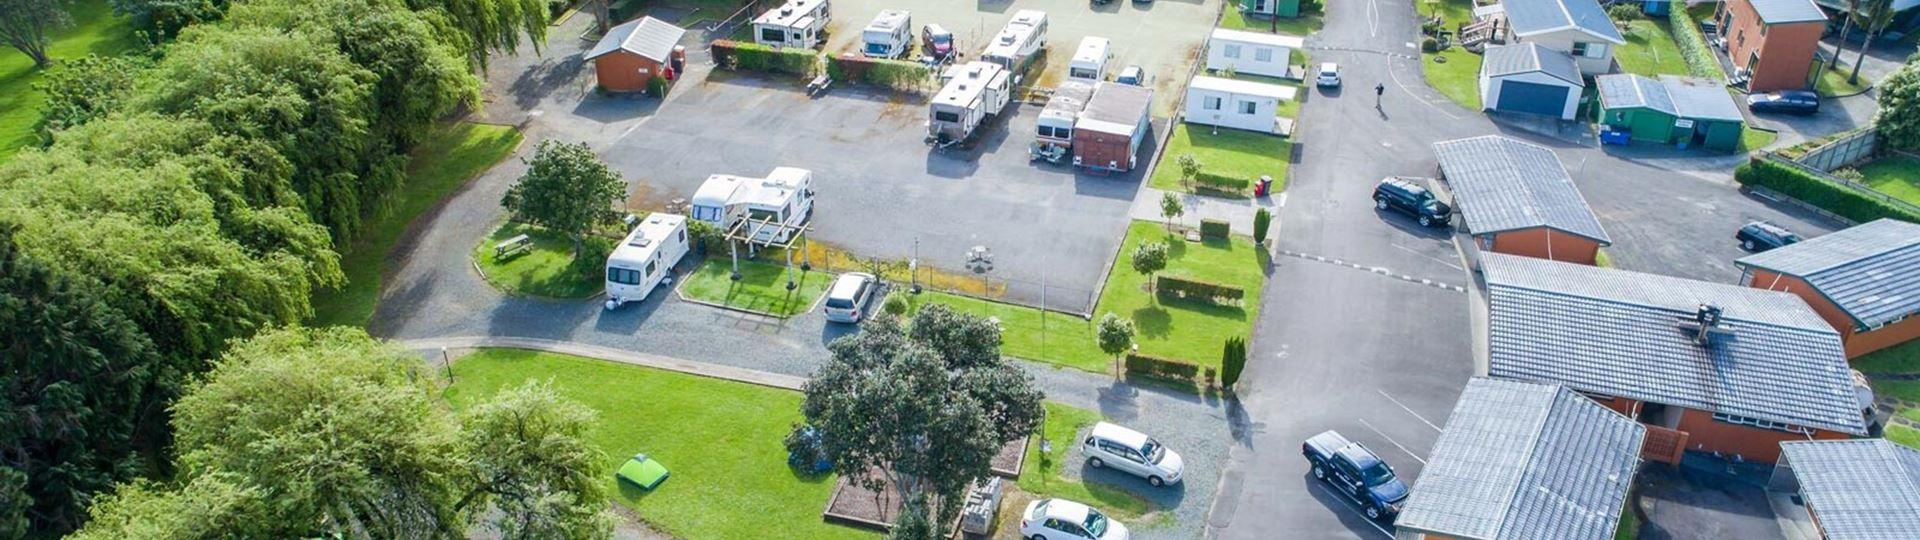 Whangarei Central Holiday Park